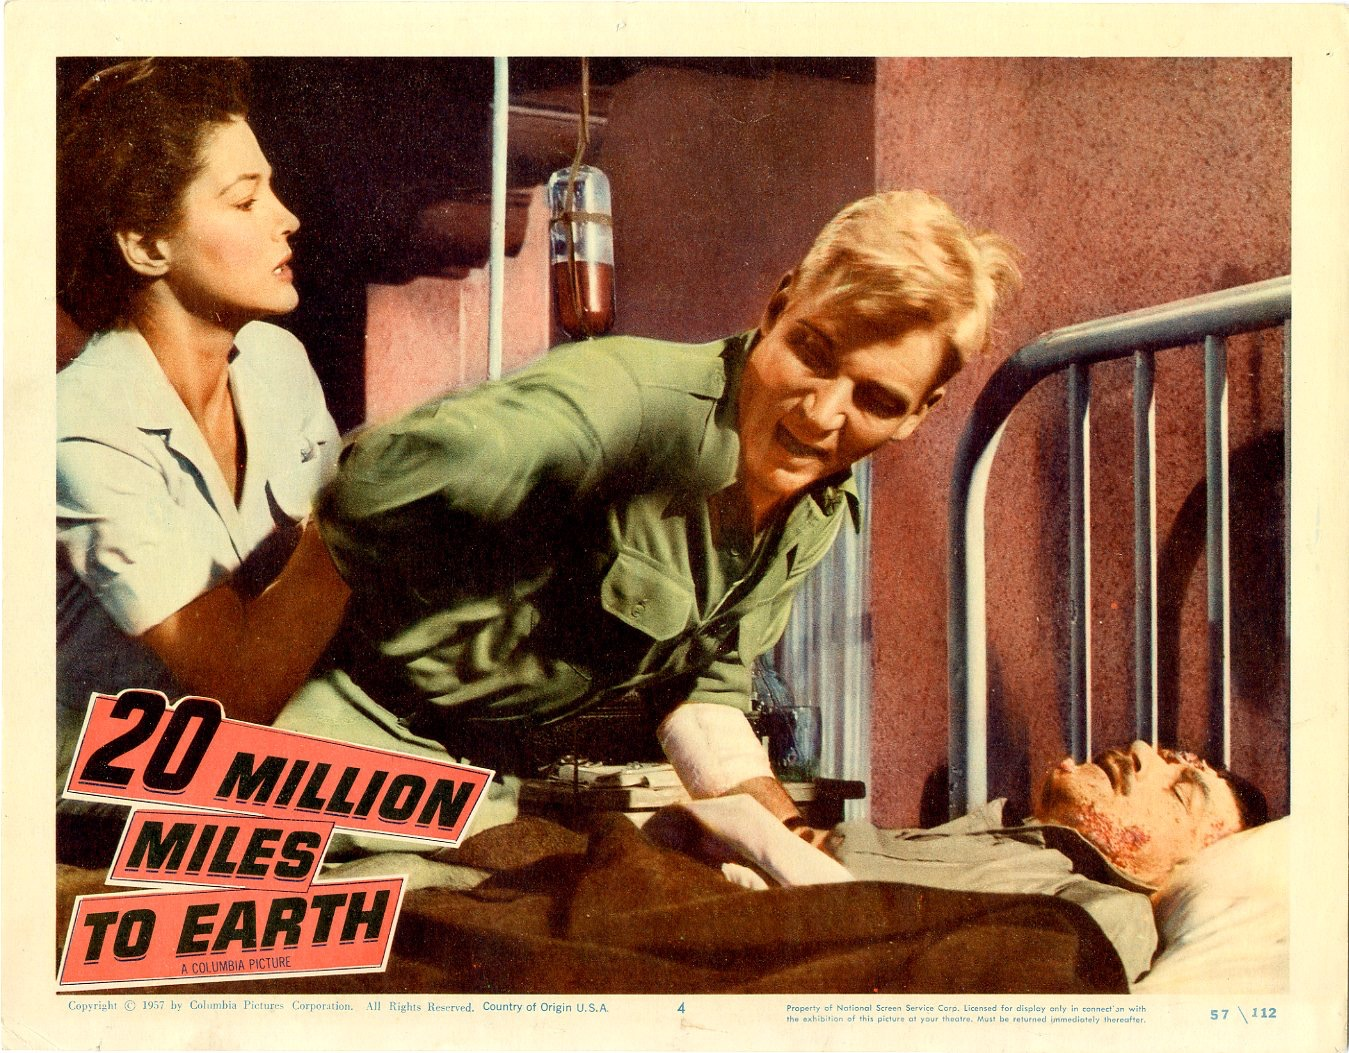 20 Million Miles To Earth 1957 - 396